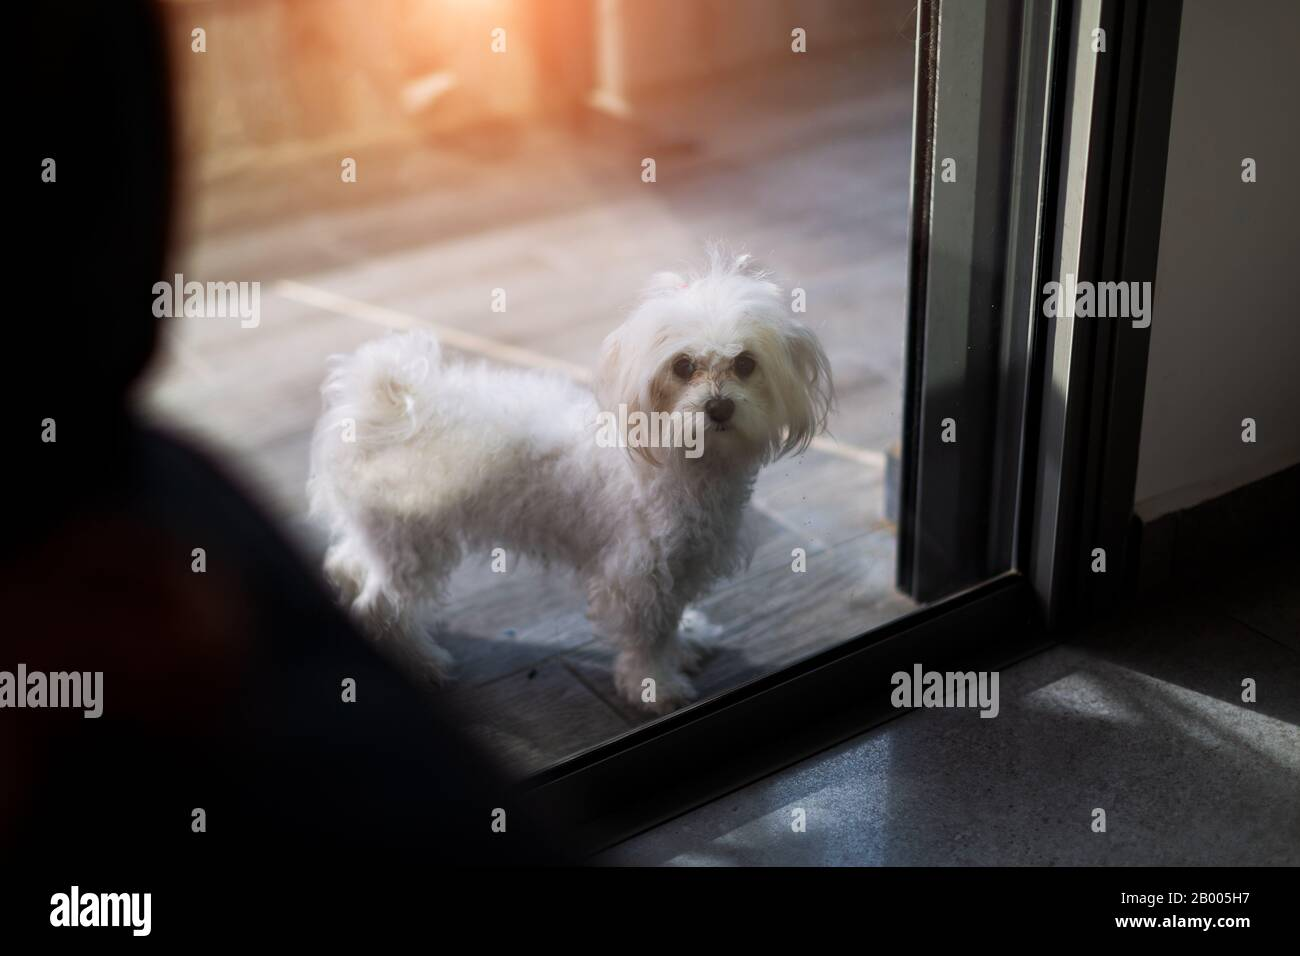 Cute white dog of Maltese breed closed on the balcony, waiting for its owner to come home. Stock Photo